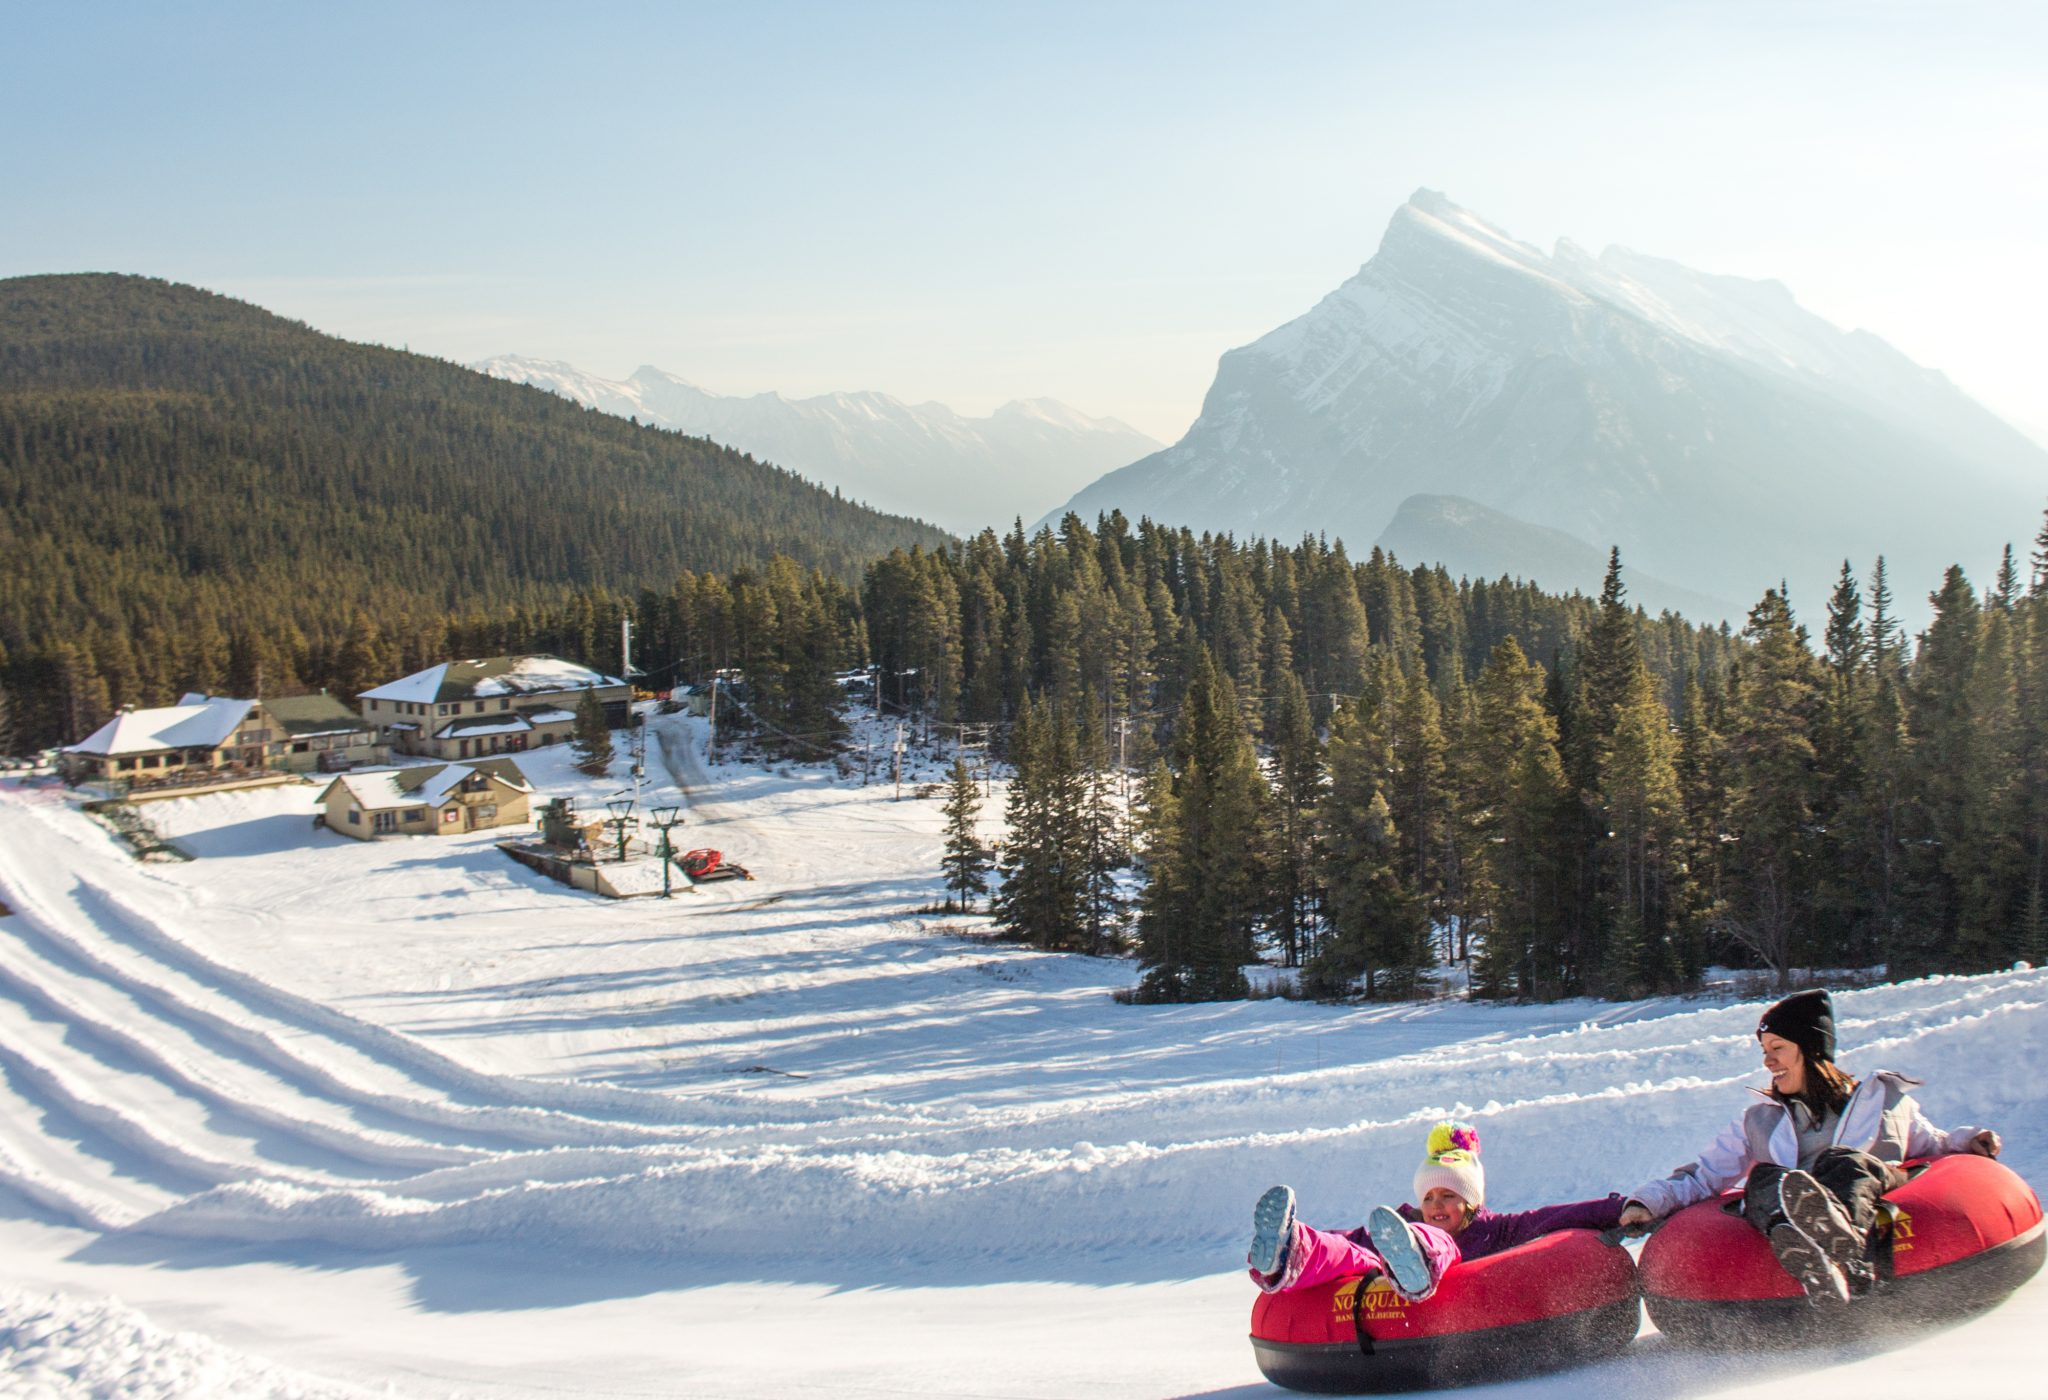 image-4-downhill-thrills_-norquays-tube-town-offers-the-longest-fastest-snow-tubing-lanes-in-alberta